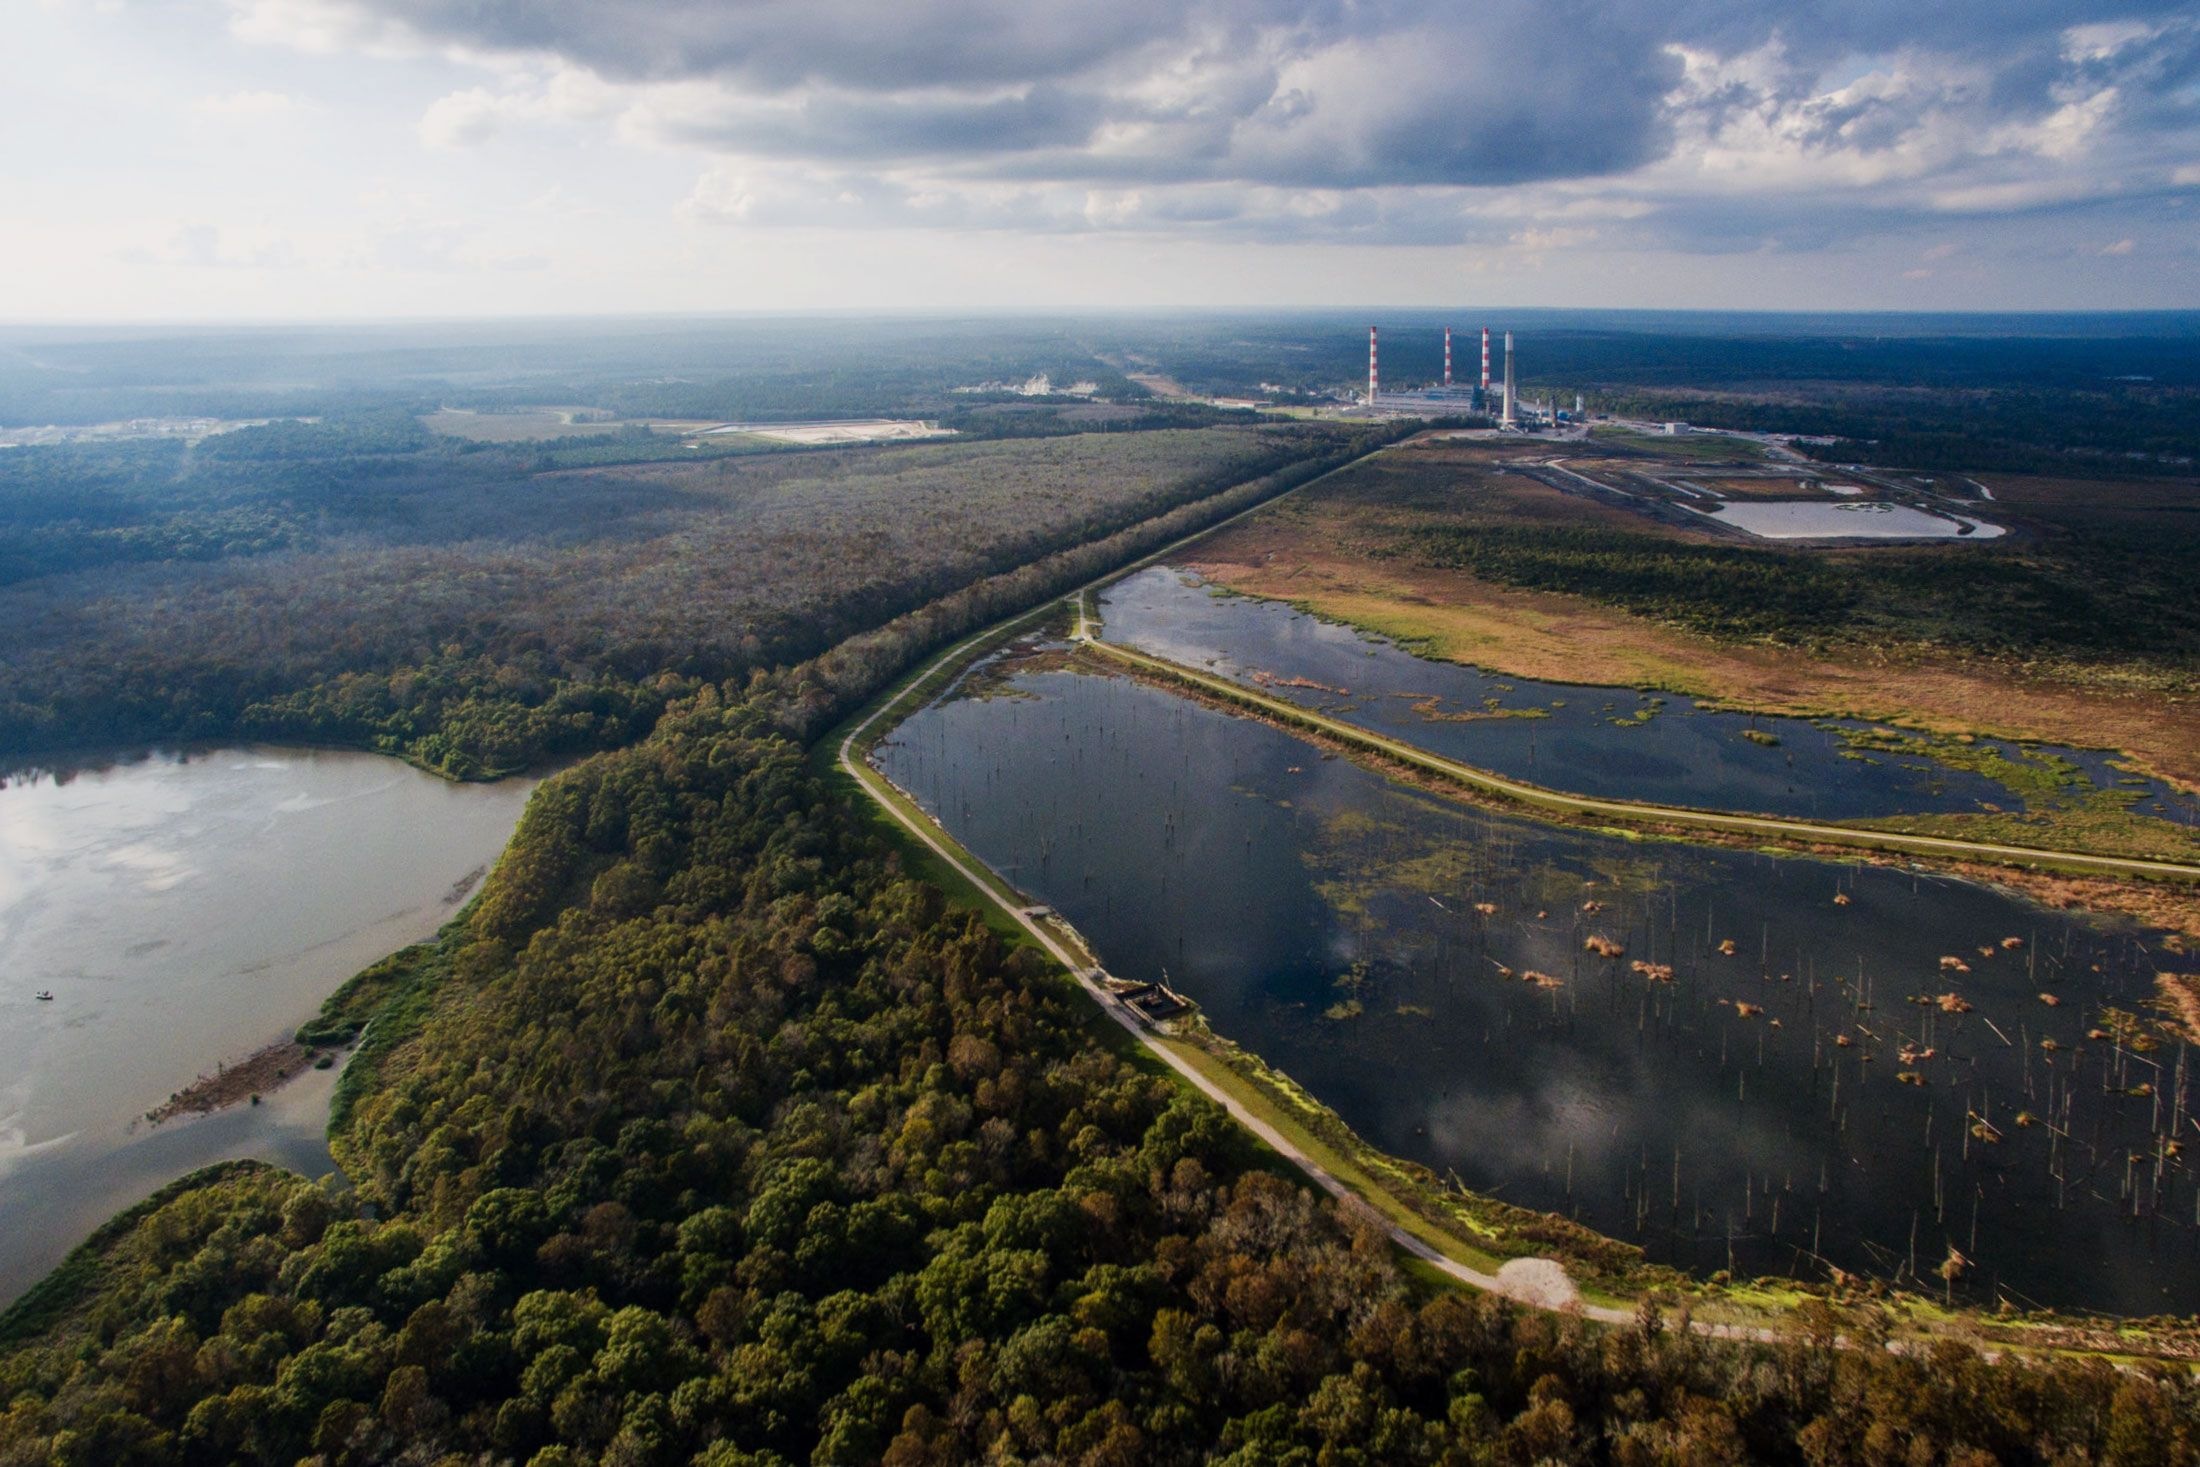 The coal and natural gas-powered Barry plant sitsadjacent to the Mobile River in the Mobile-Tensaw Delta.